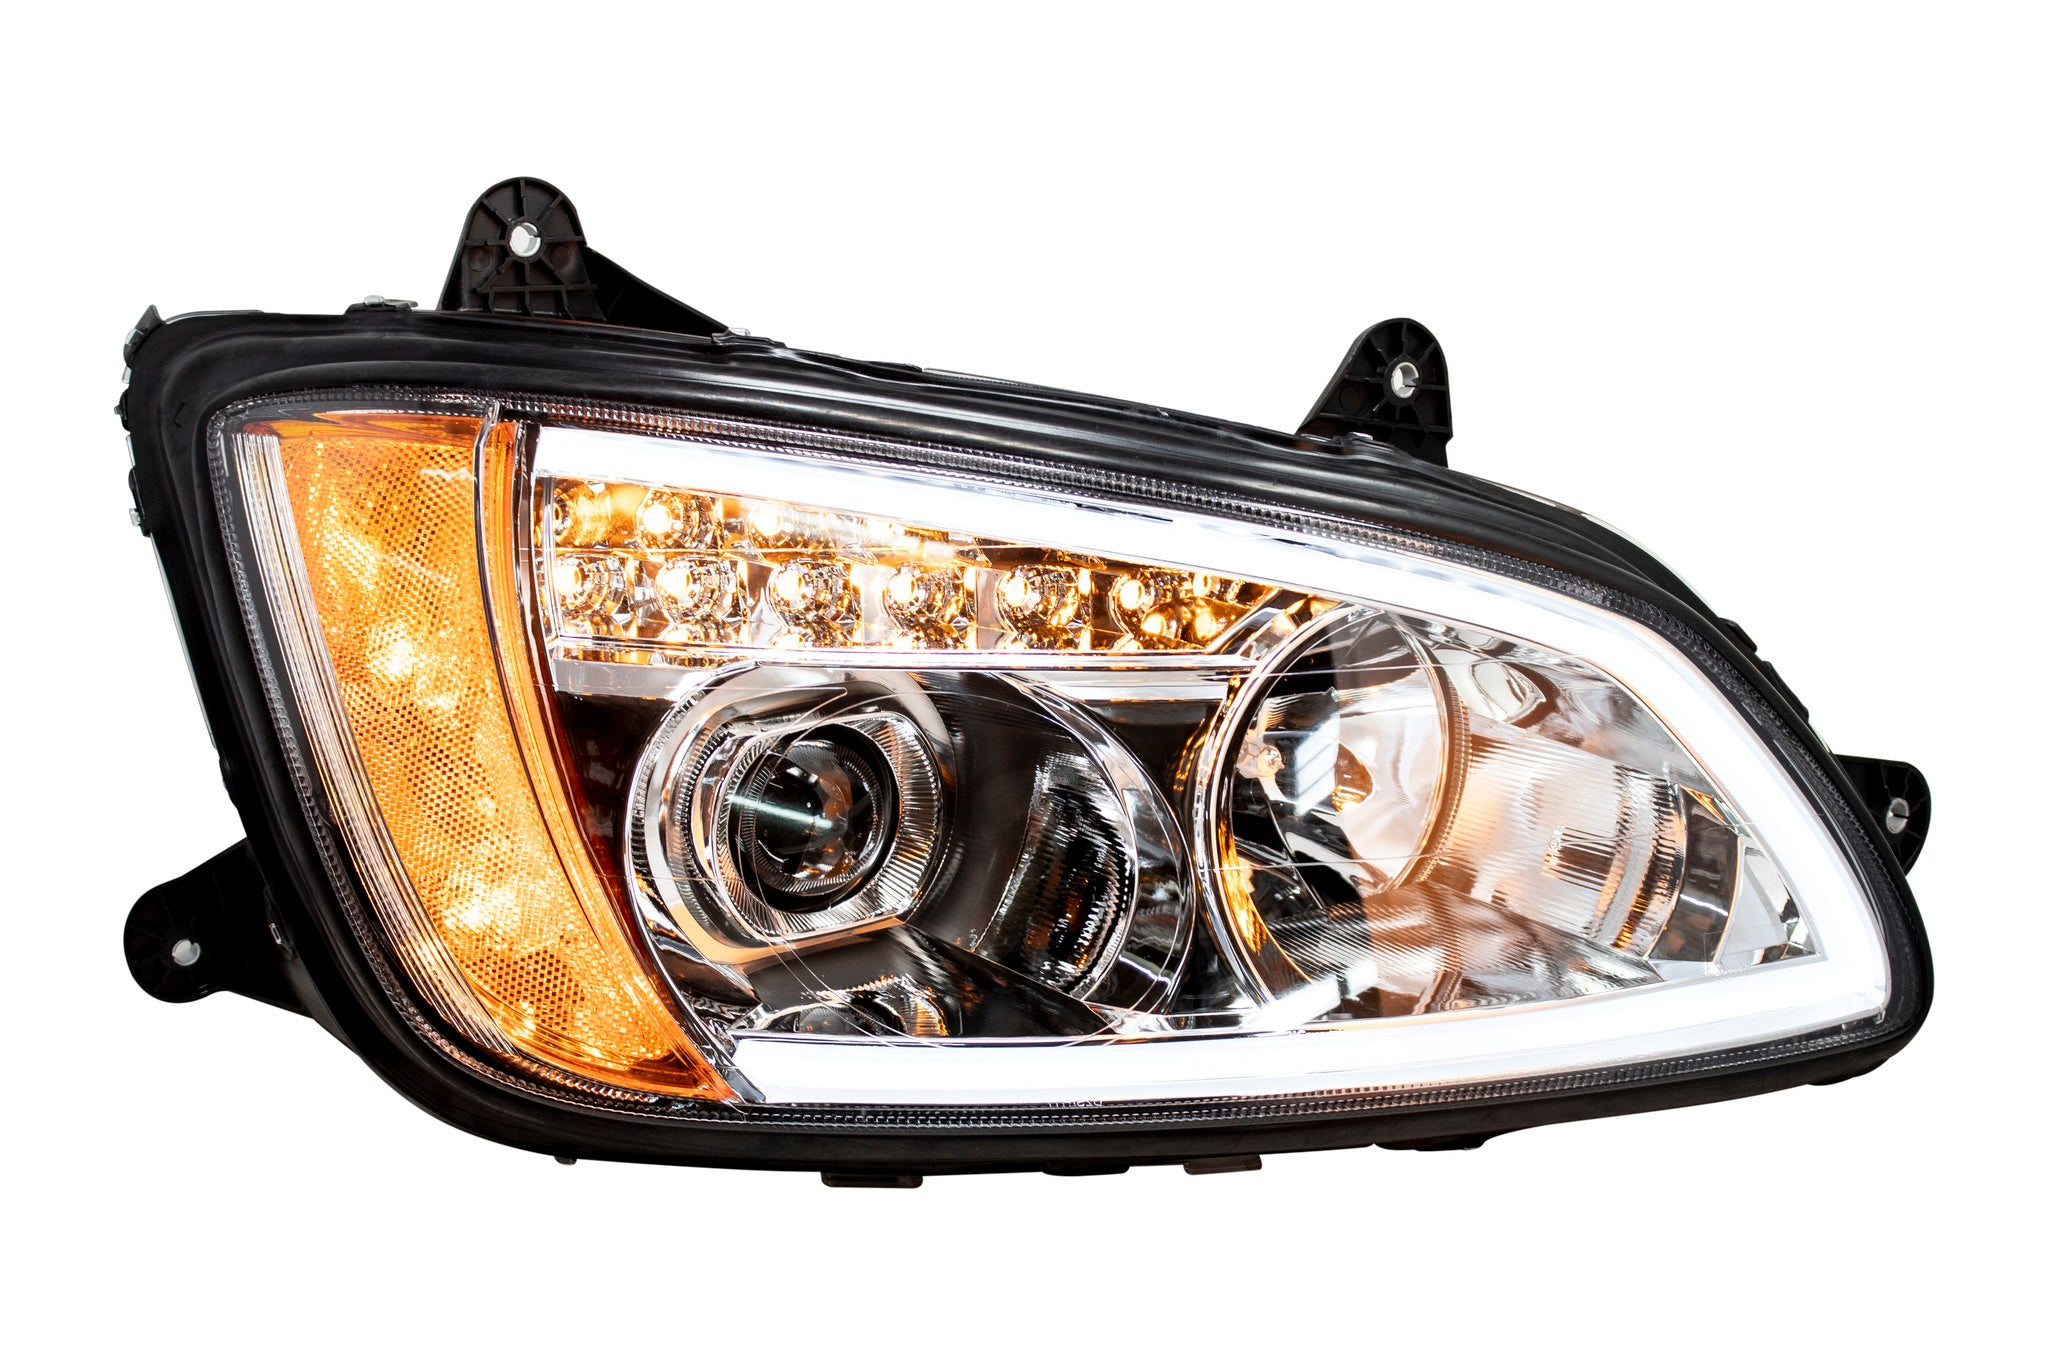 Headlight With Black Reflector with Light Bar (Amber / White